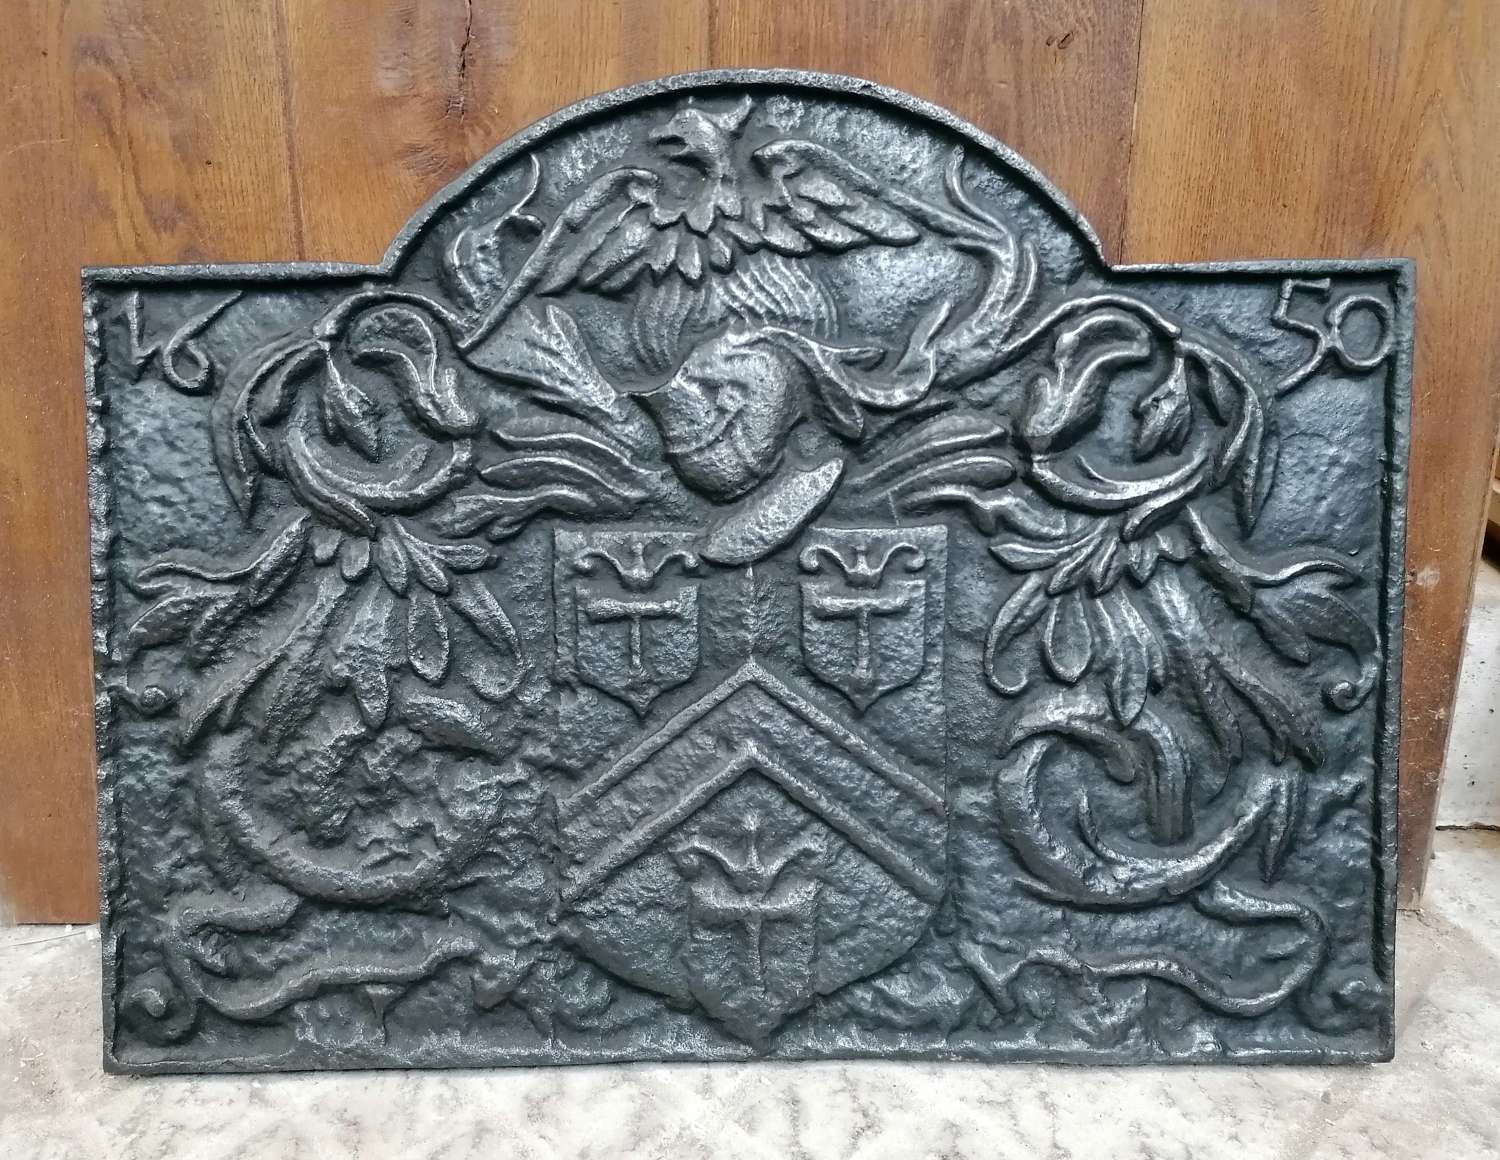 FB0065 A RECLAIMED VINTAGE DECORATIVE REPRODUCTION CAST IRON FIRE BACK